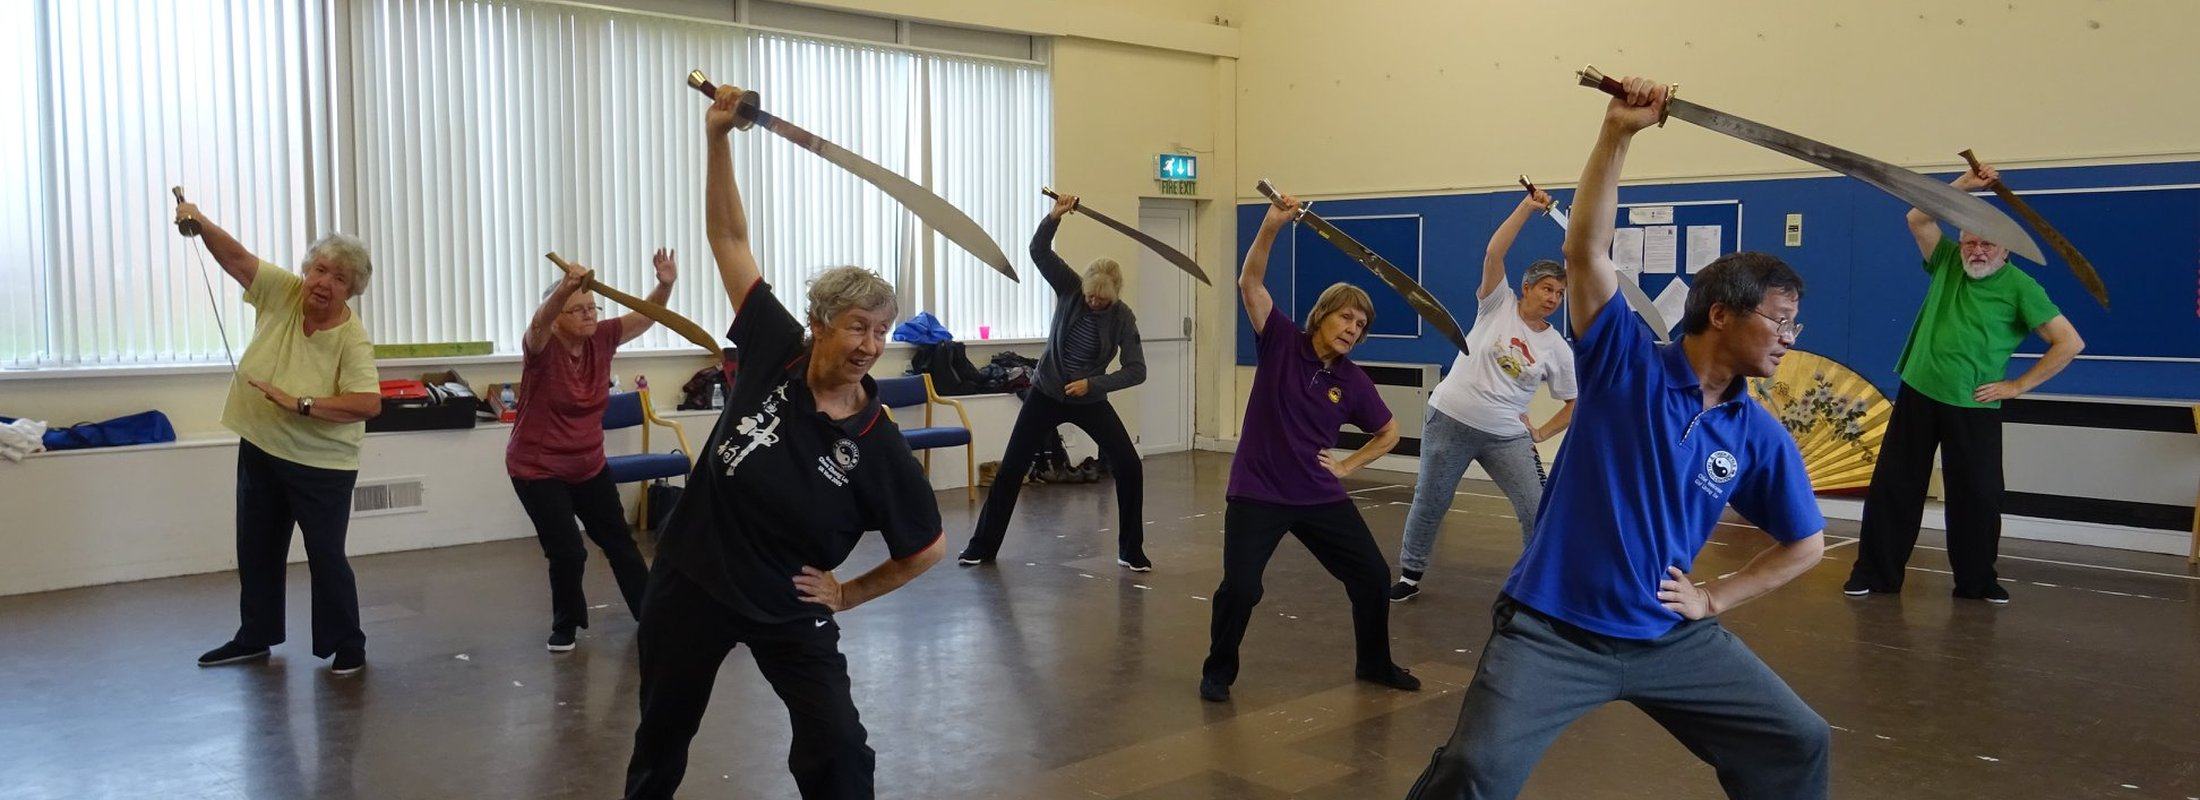 Broadsword Training with Grandmaster Liming Yue Seminar